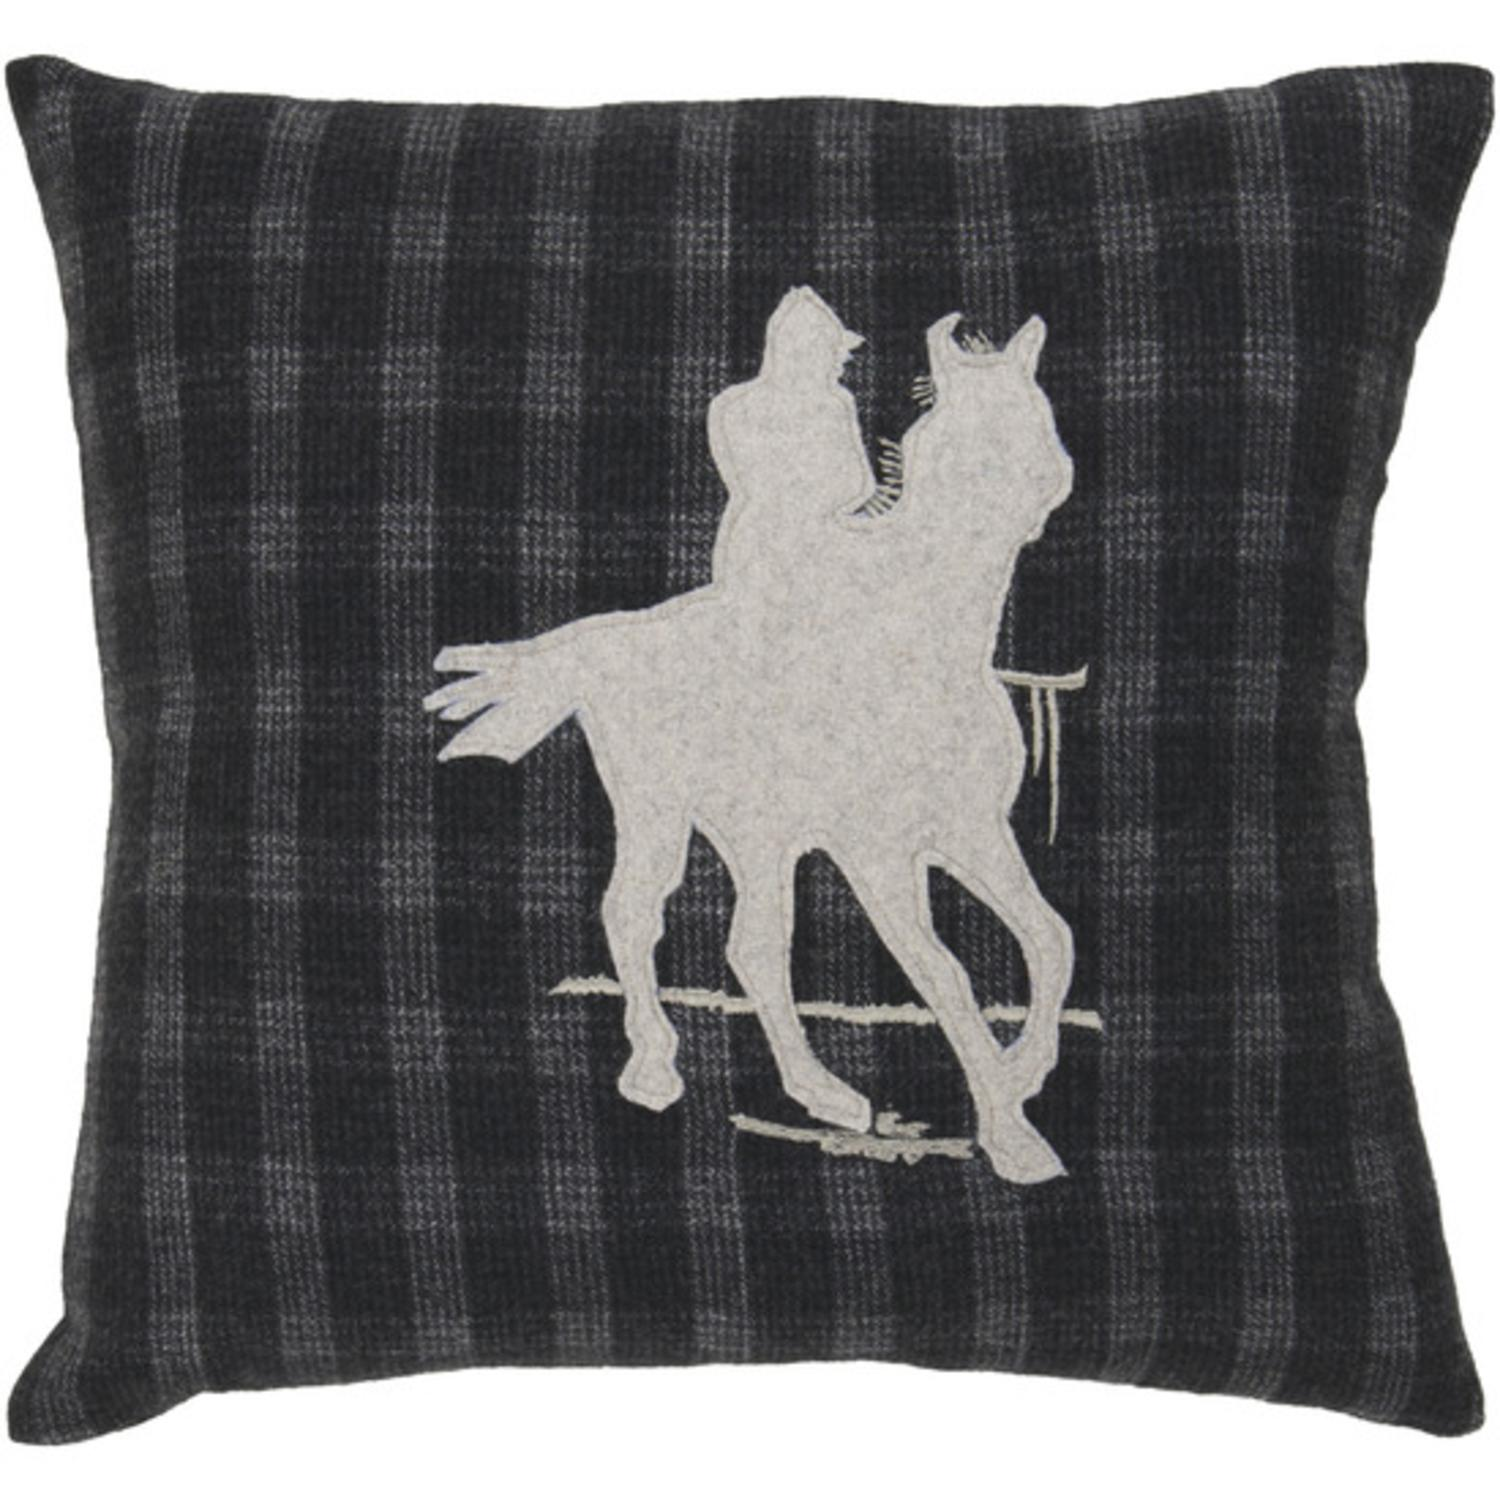 "22"" Country Horse and Cowboy Silhouette on Plaid Decorative Throw Pillow"